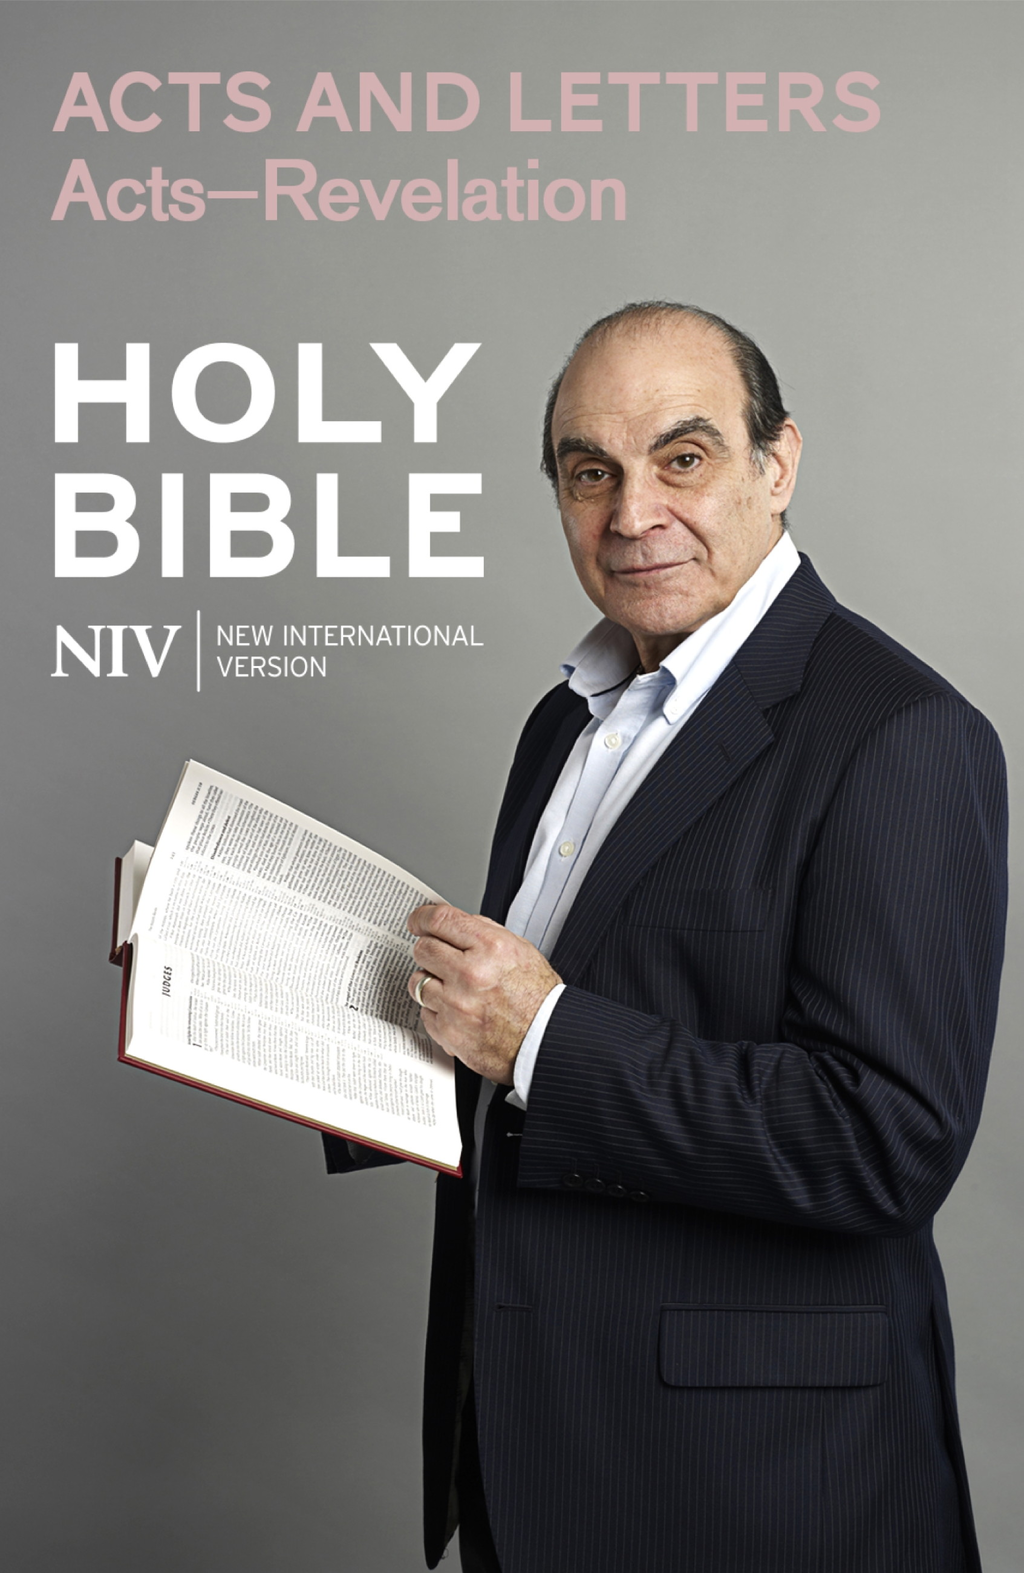 NIV Bible: Acts and Letters Acts?Revelation